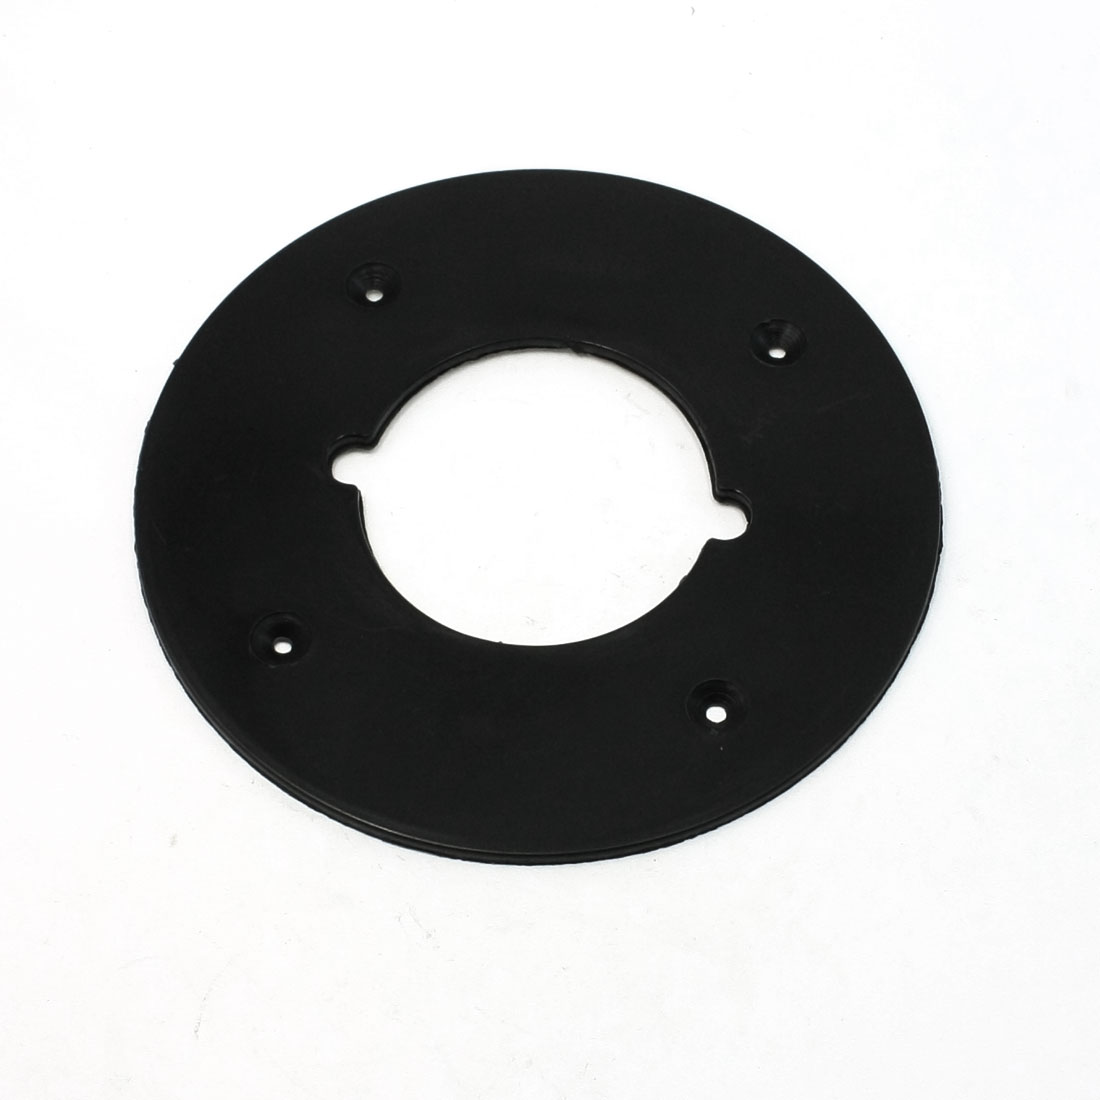 Black Circle Shape Electric Router Plastic Base for Makita 3612